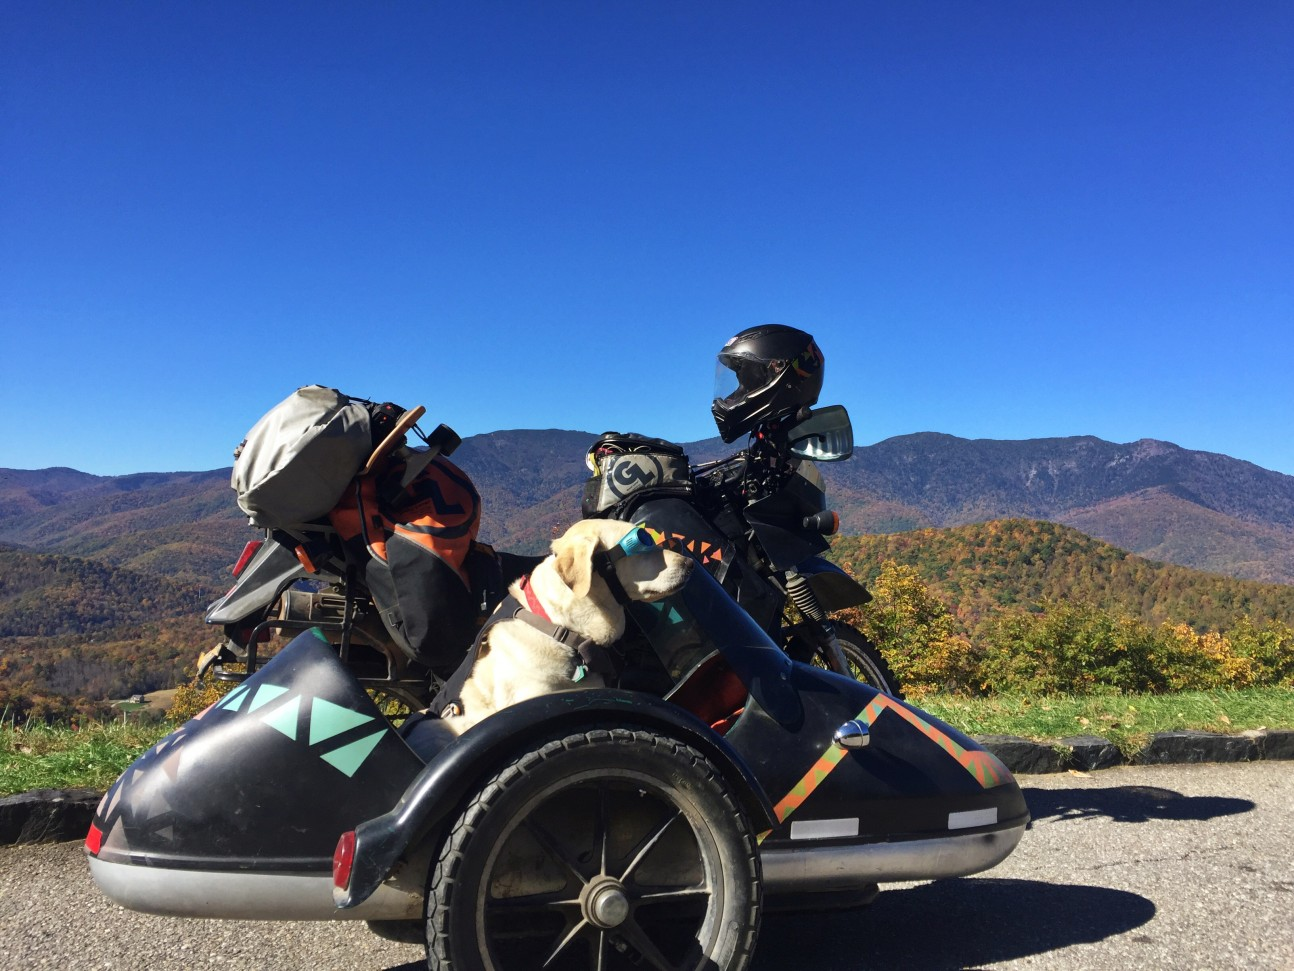 Baylor the Motorcycle Dog Explores North Carolina | Operation Moto Dog